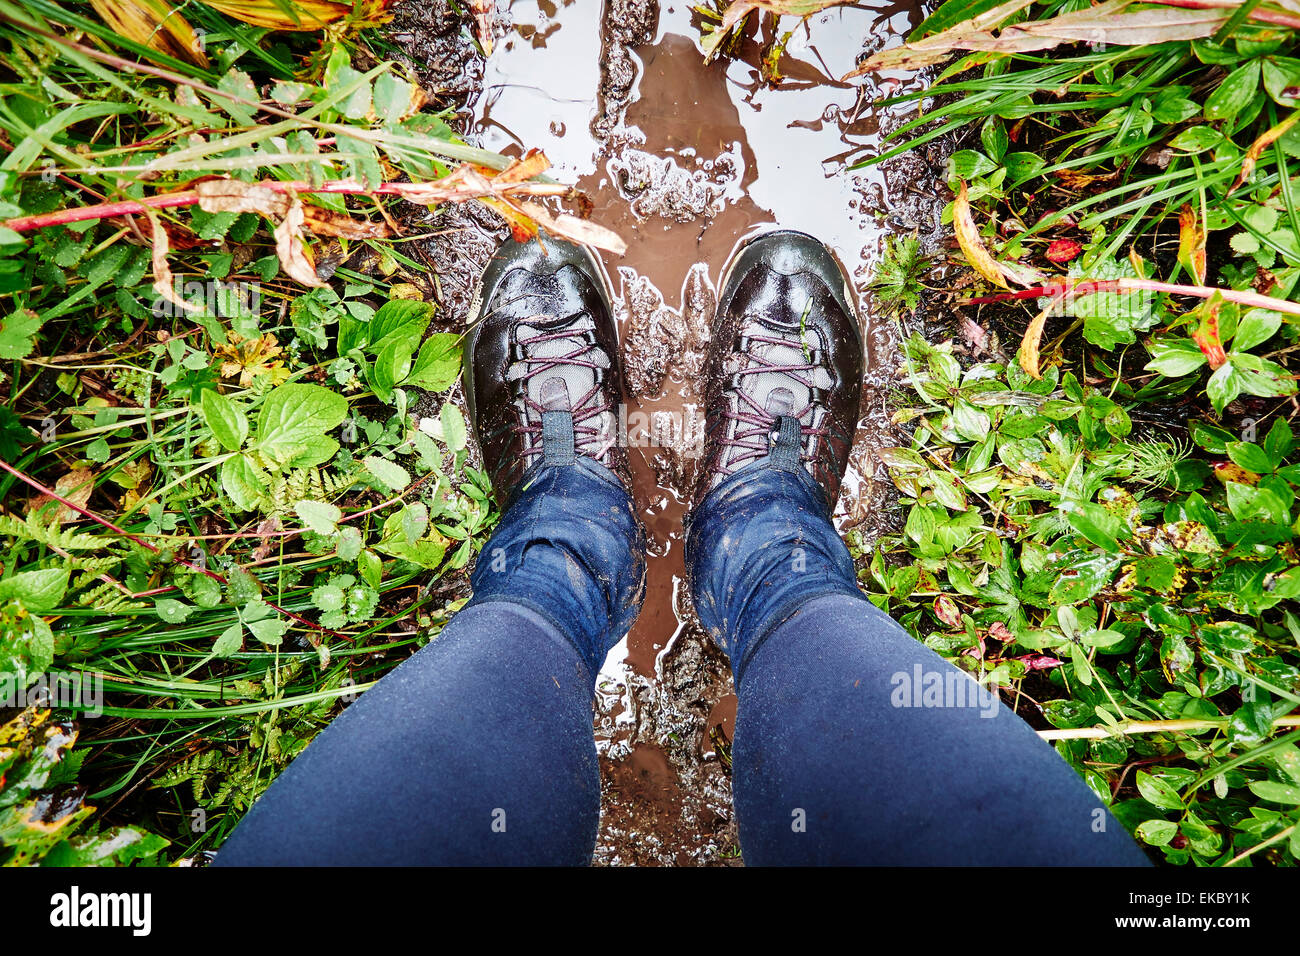 Hiking boots on muddy trail, Palmer, Alaska, USA - Stock Image